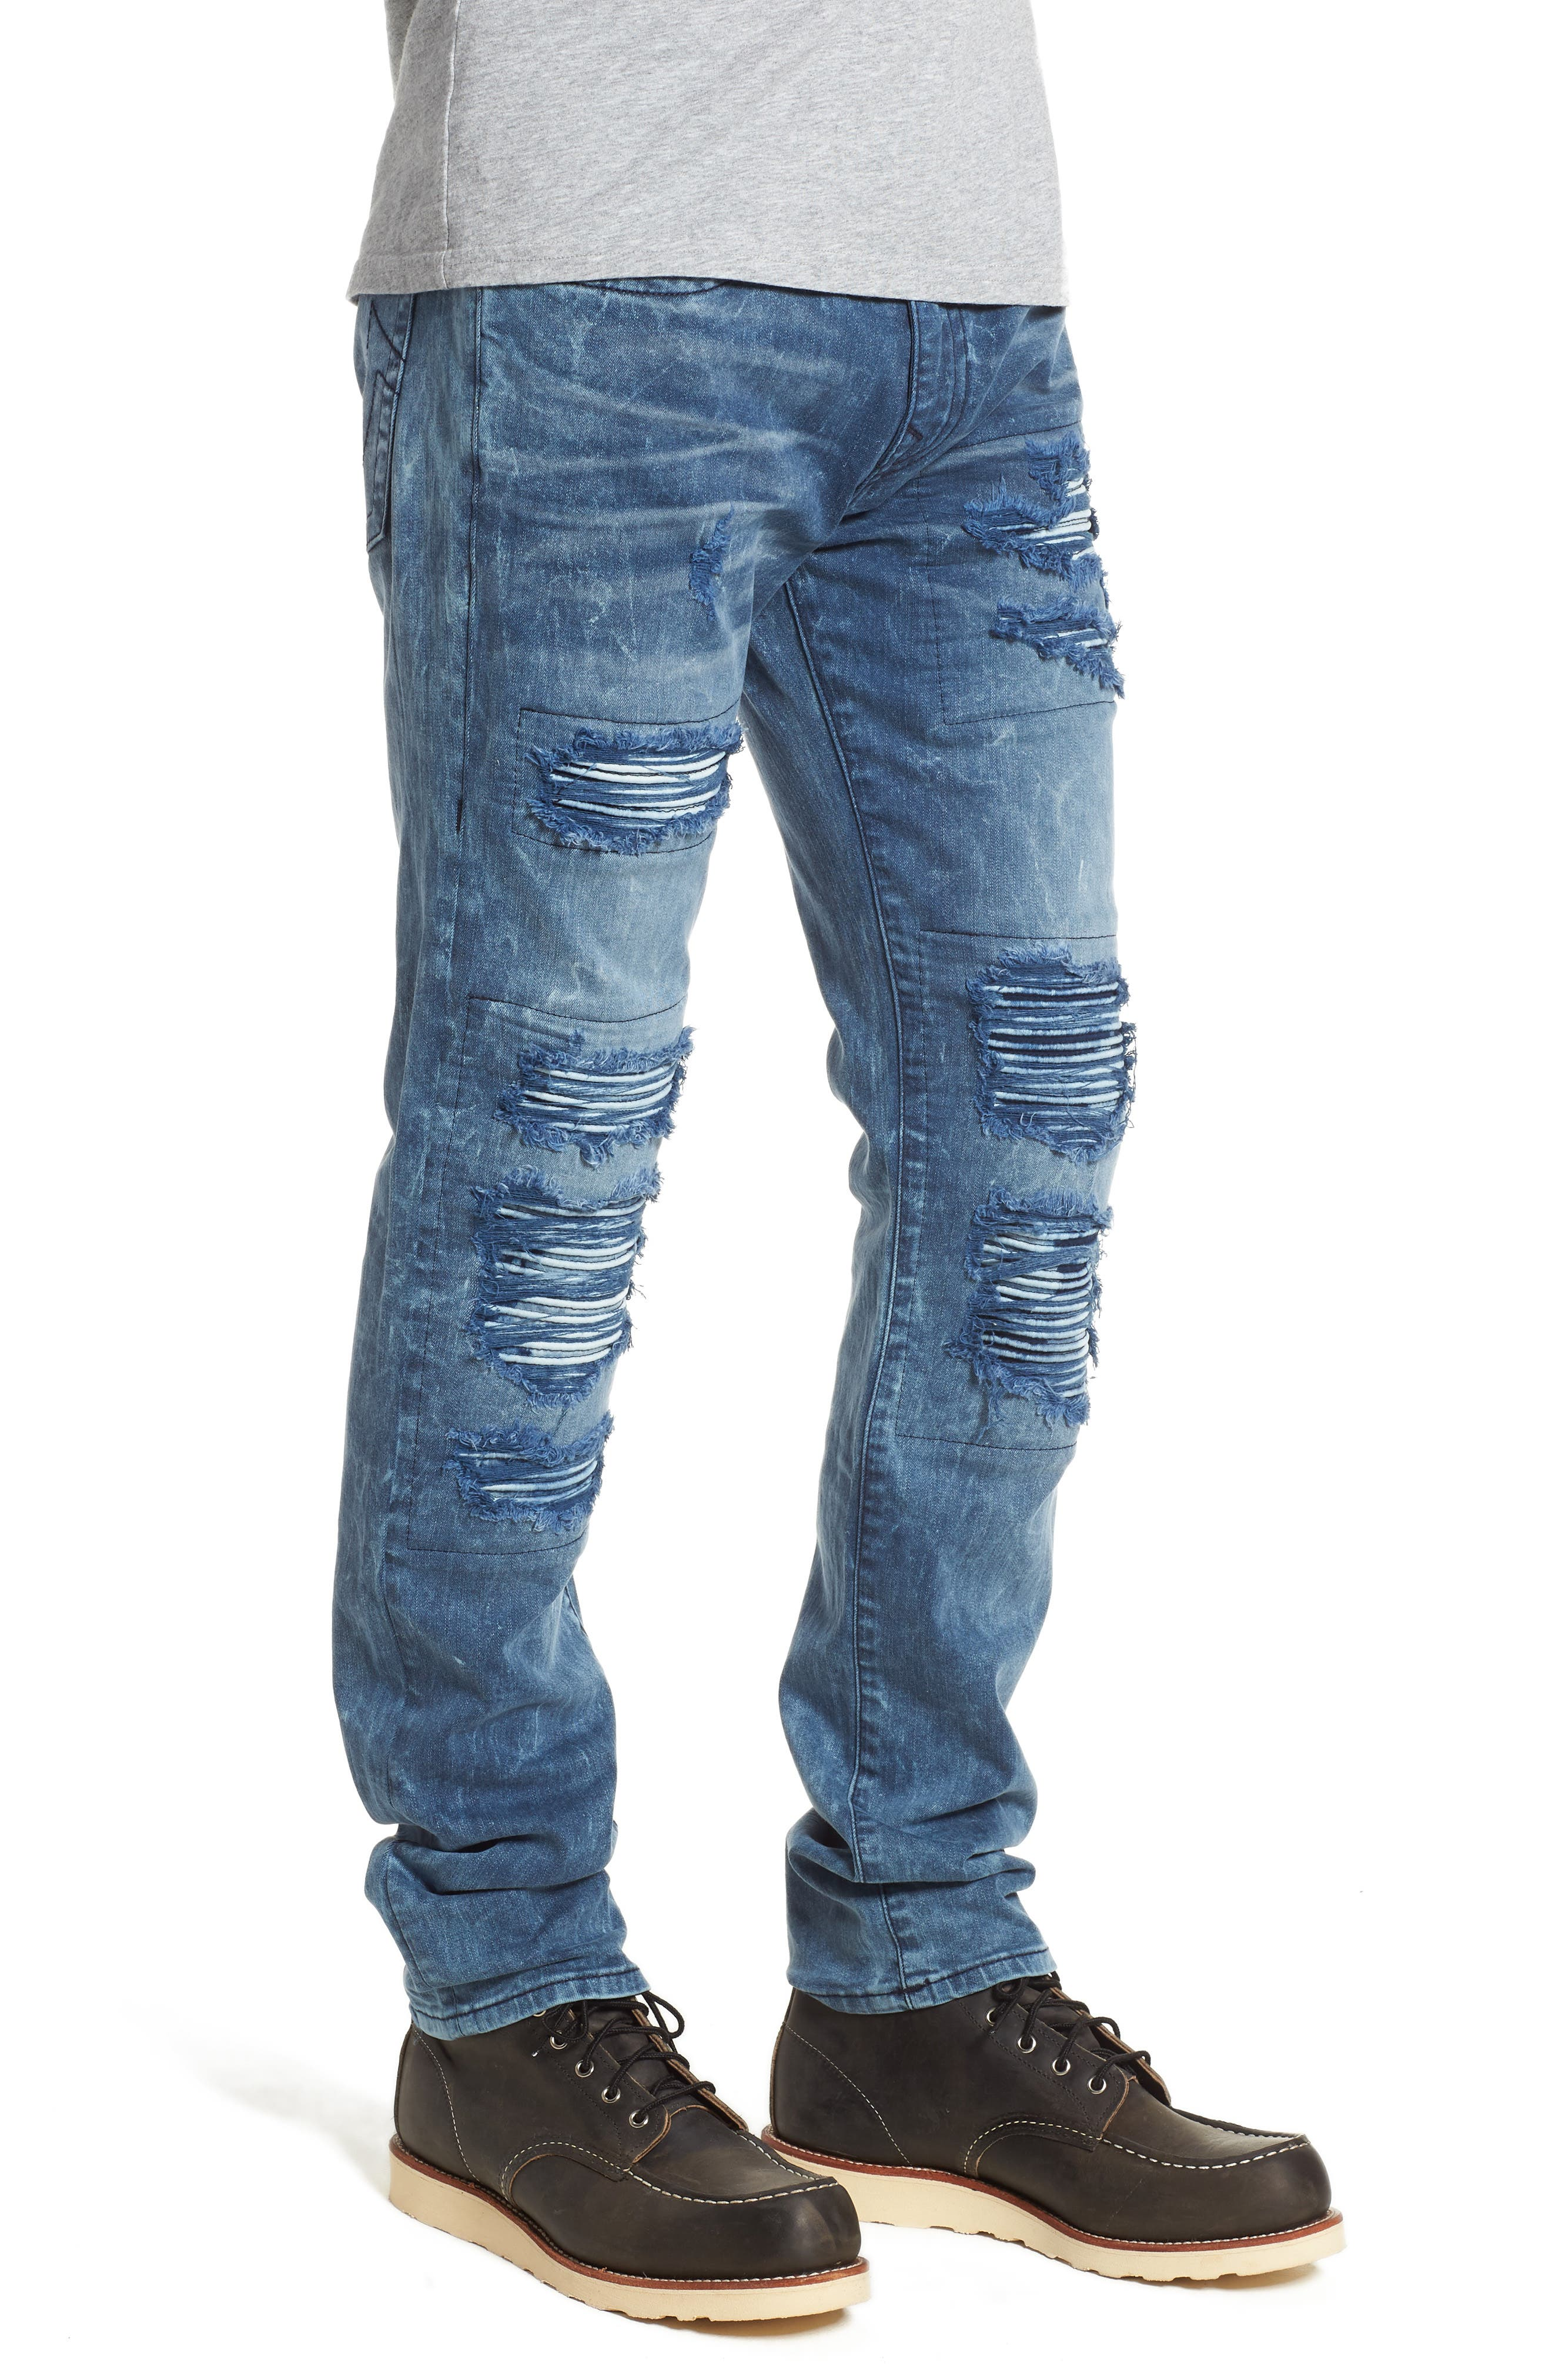 Rocco Skinny Fit Jeans,                             Alternate thumbnail 3, color,                             Blue